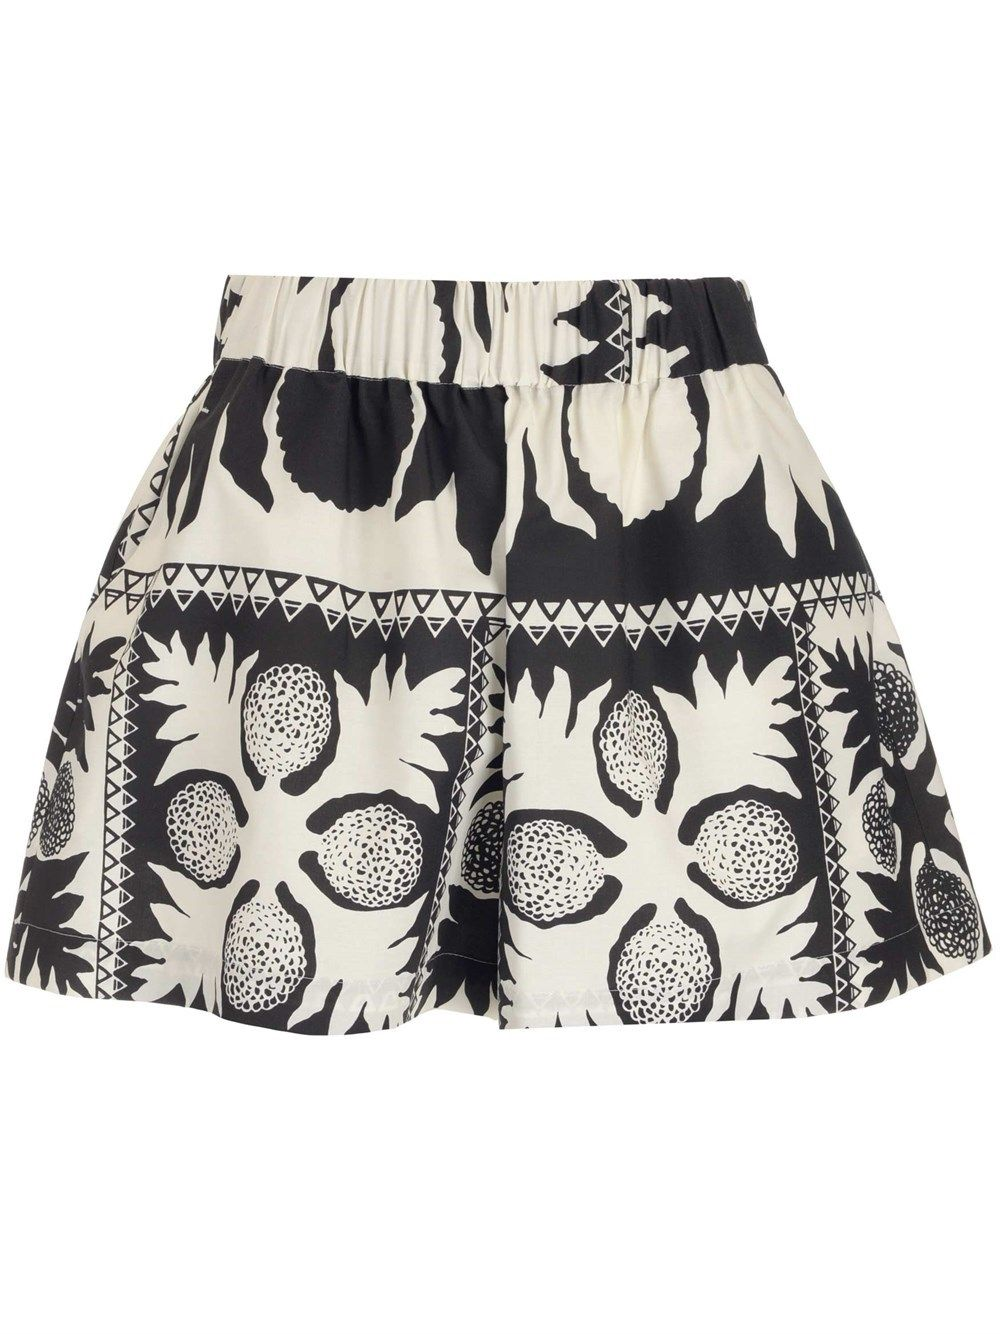 Red Valentino Shorts RED VALENTINO WOMEN'S BLACK OTHER MATERIALS SHORTS